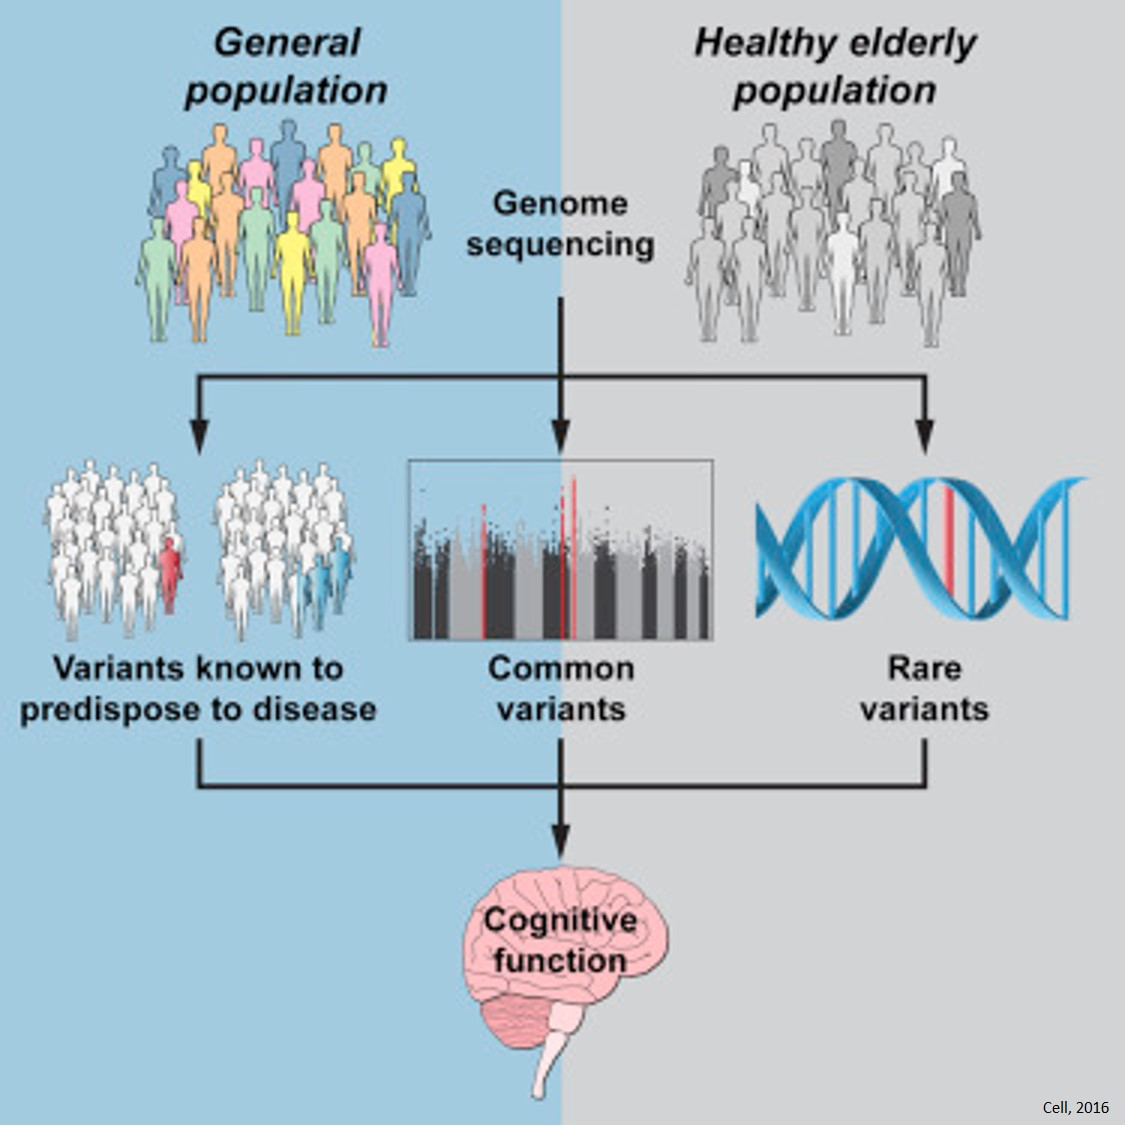 Link between cognitive decline genes and healthy aging